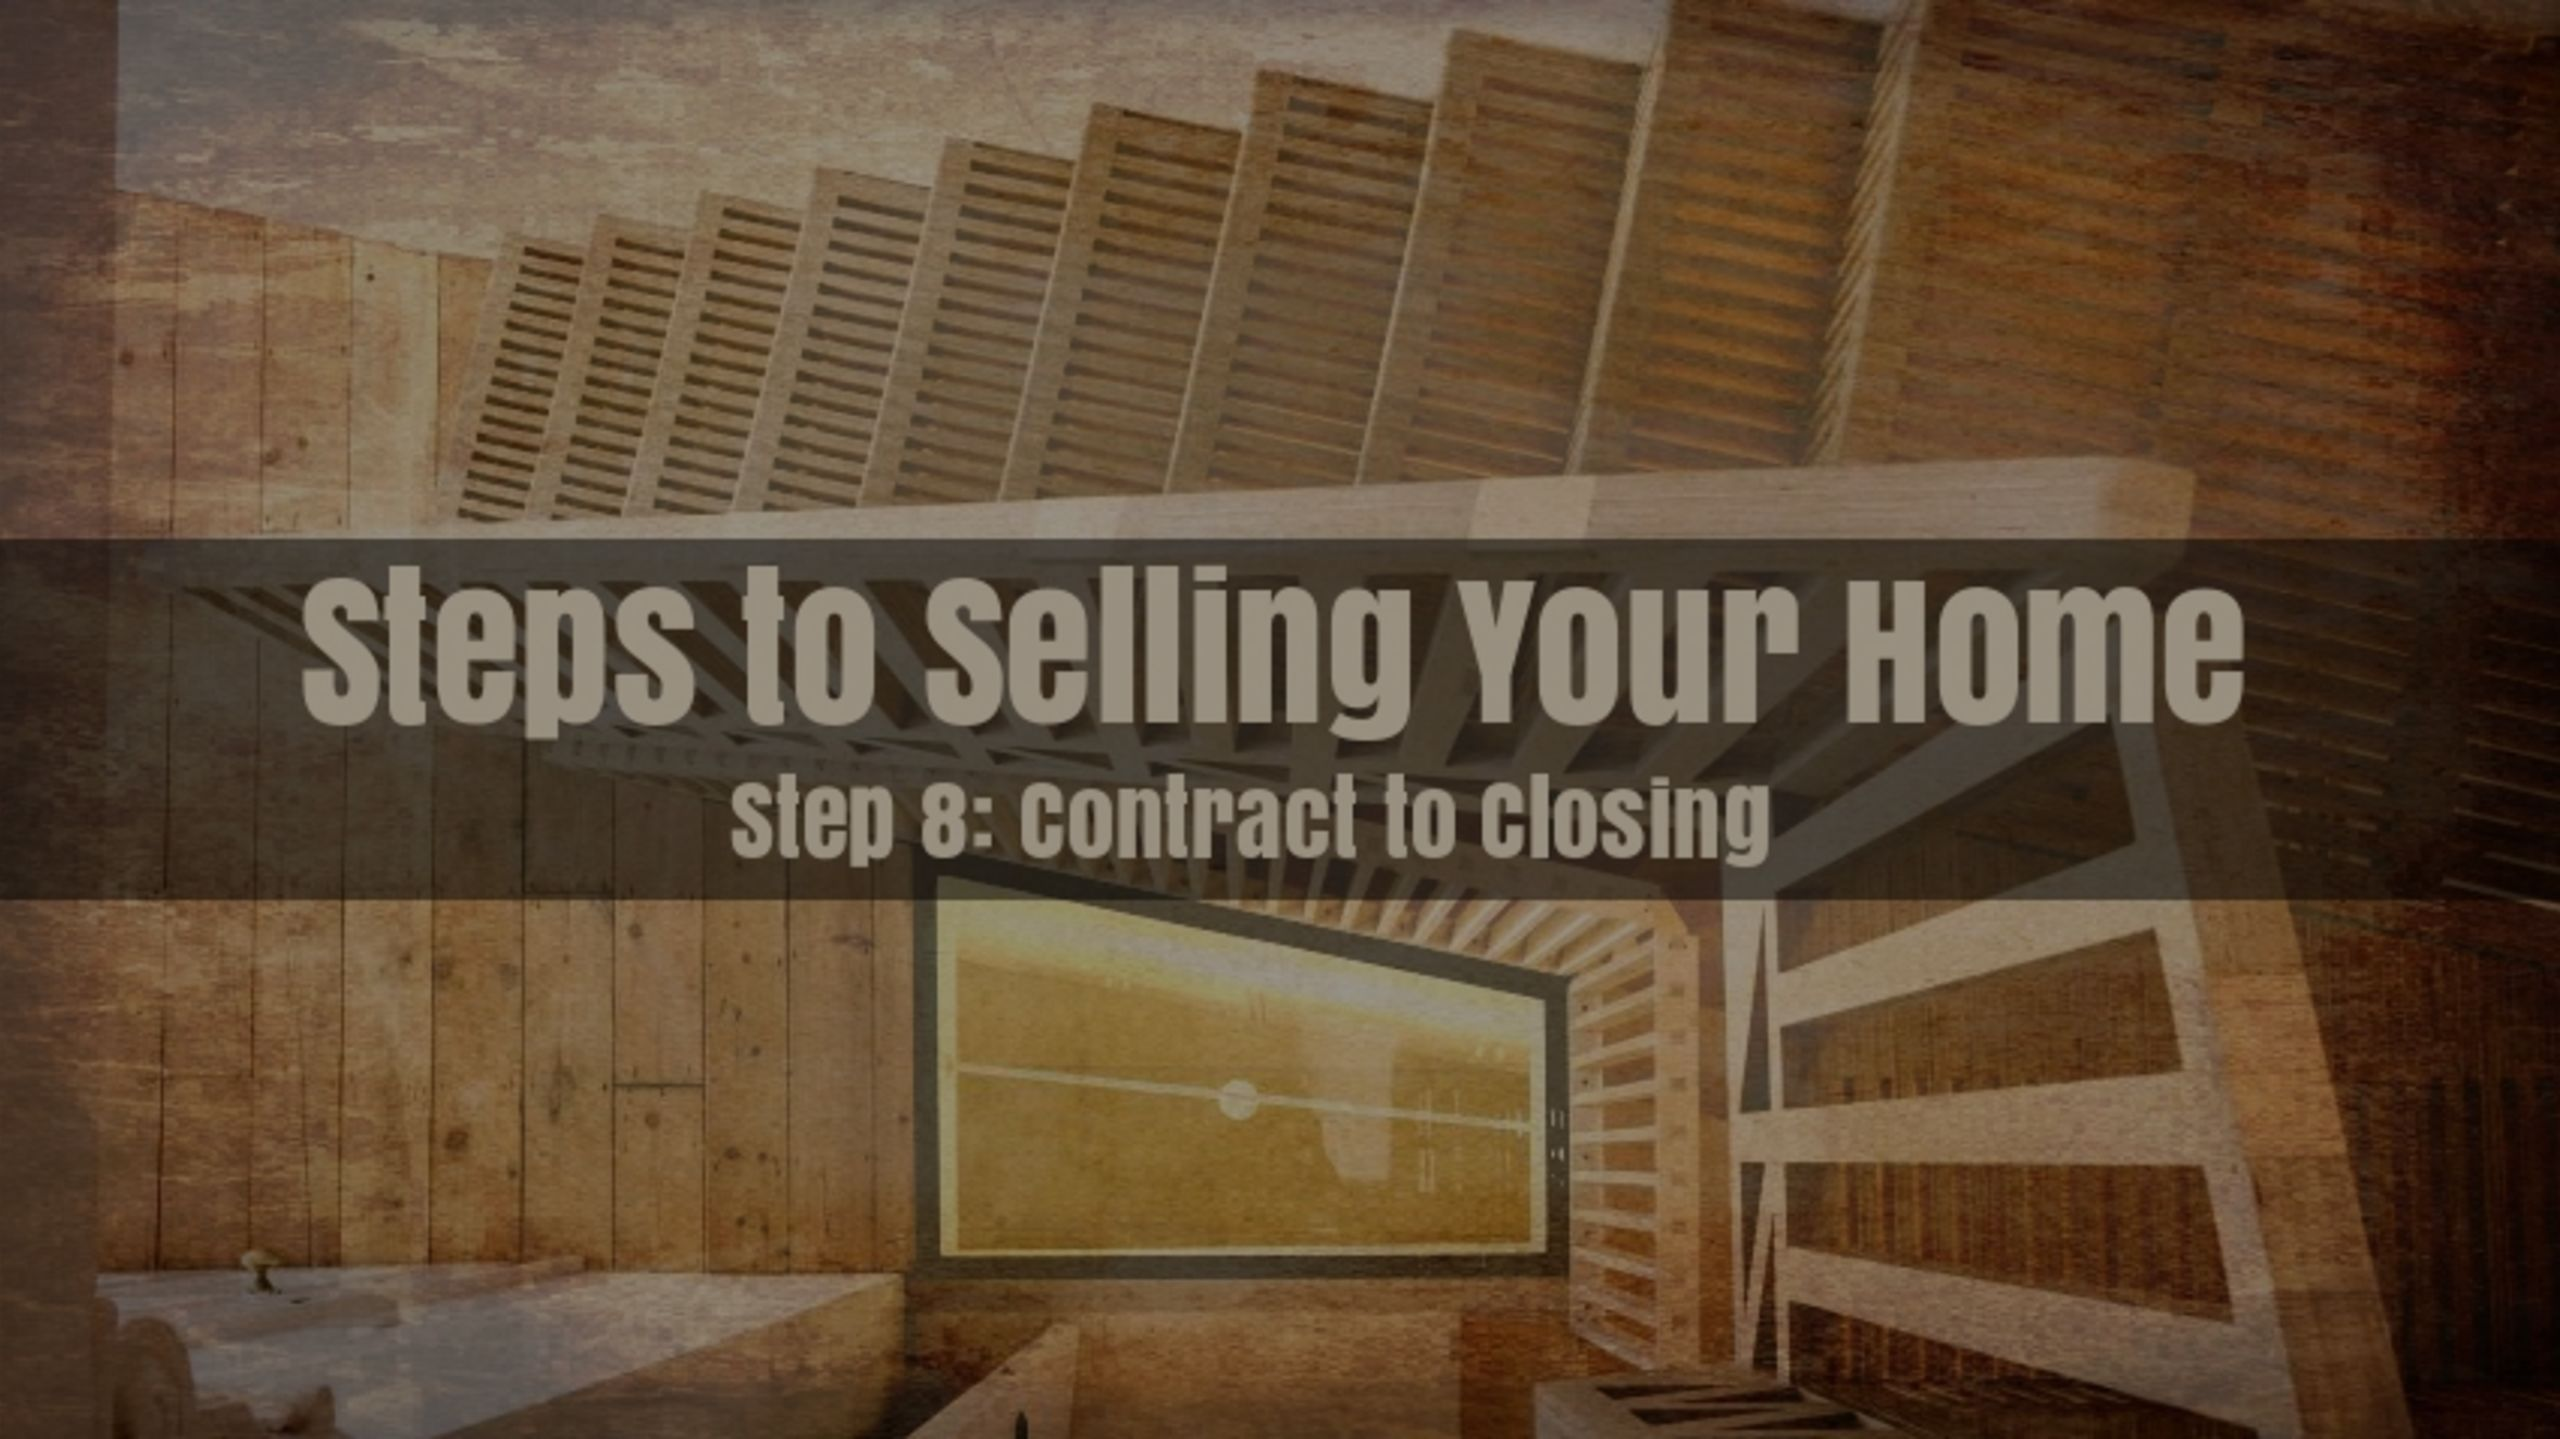 Step 8 – Contract to Closing